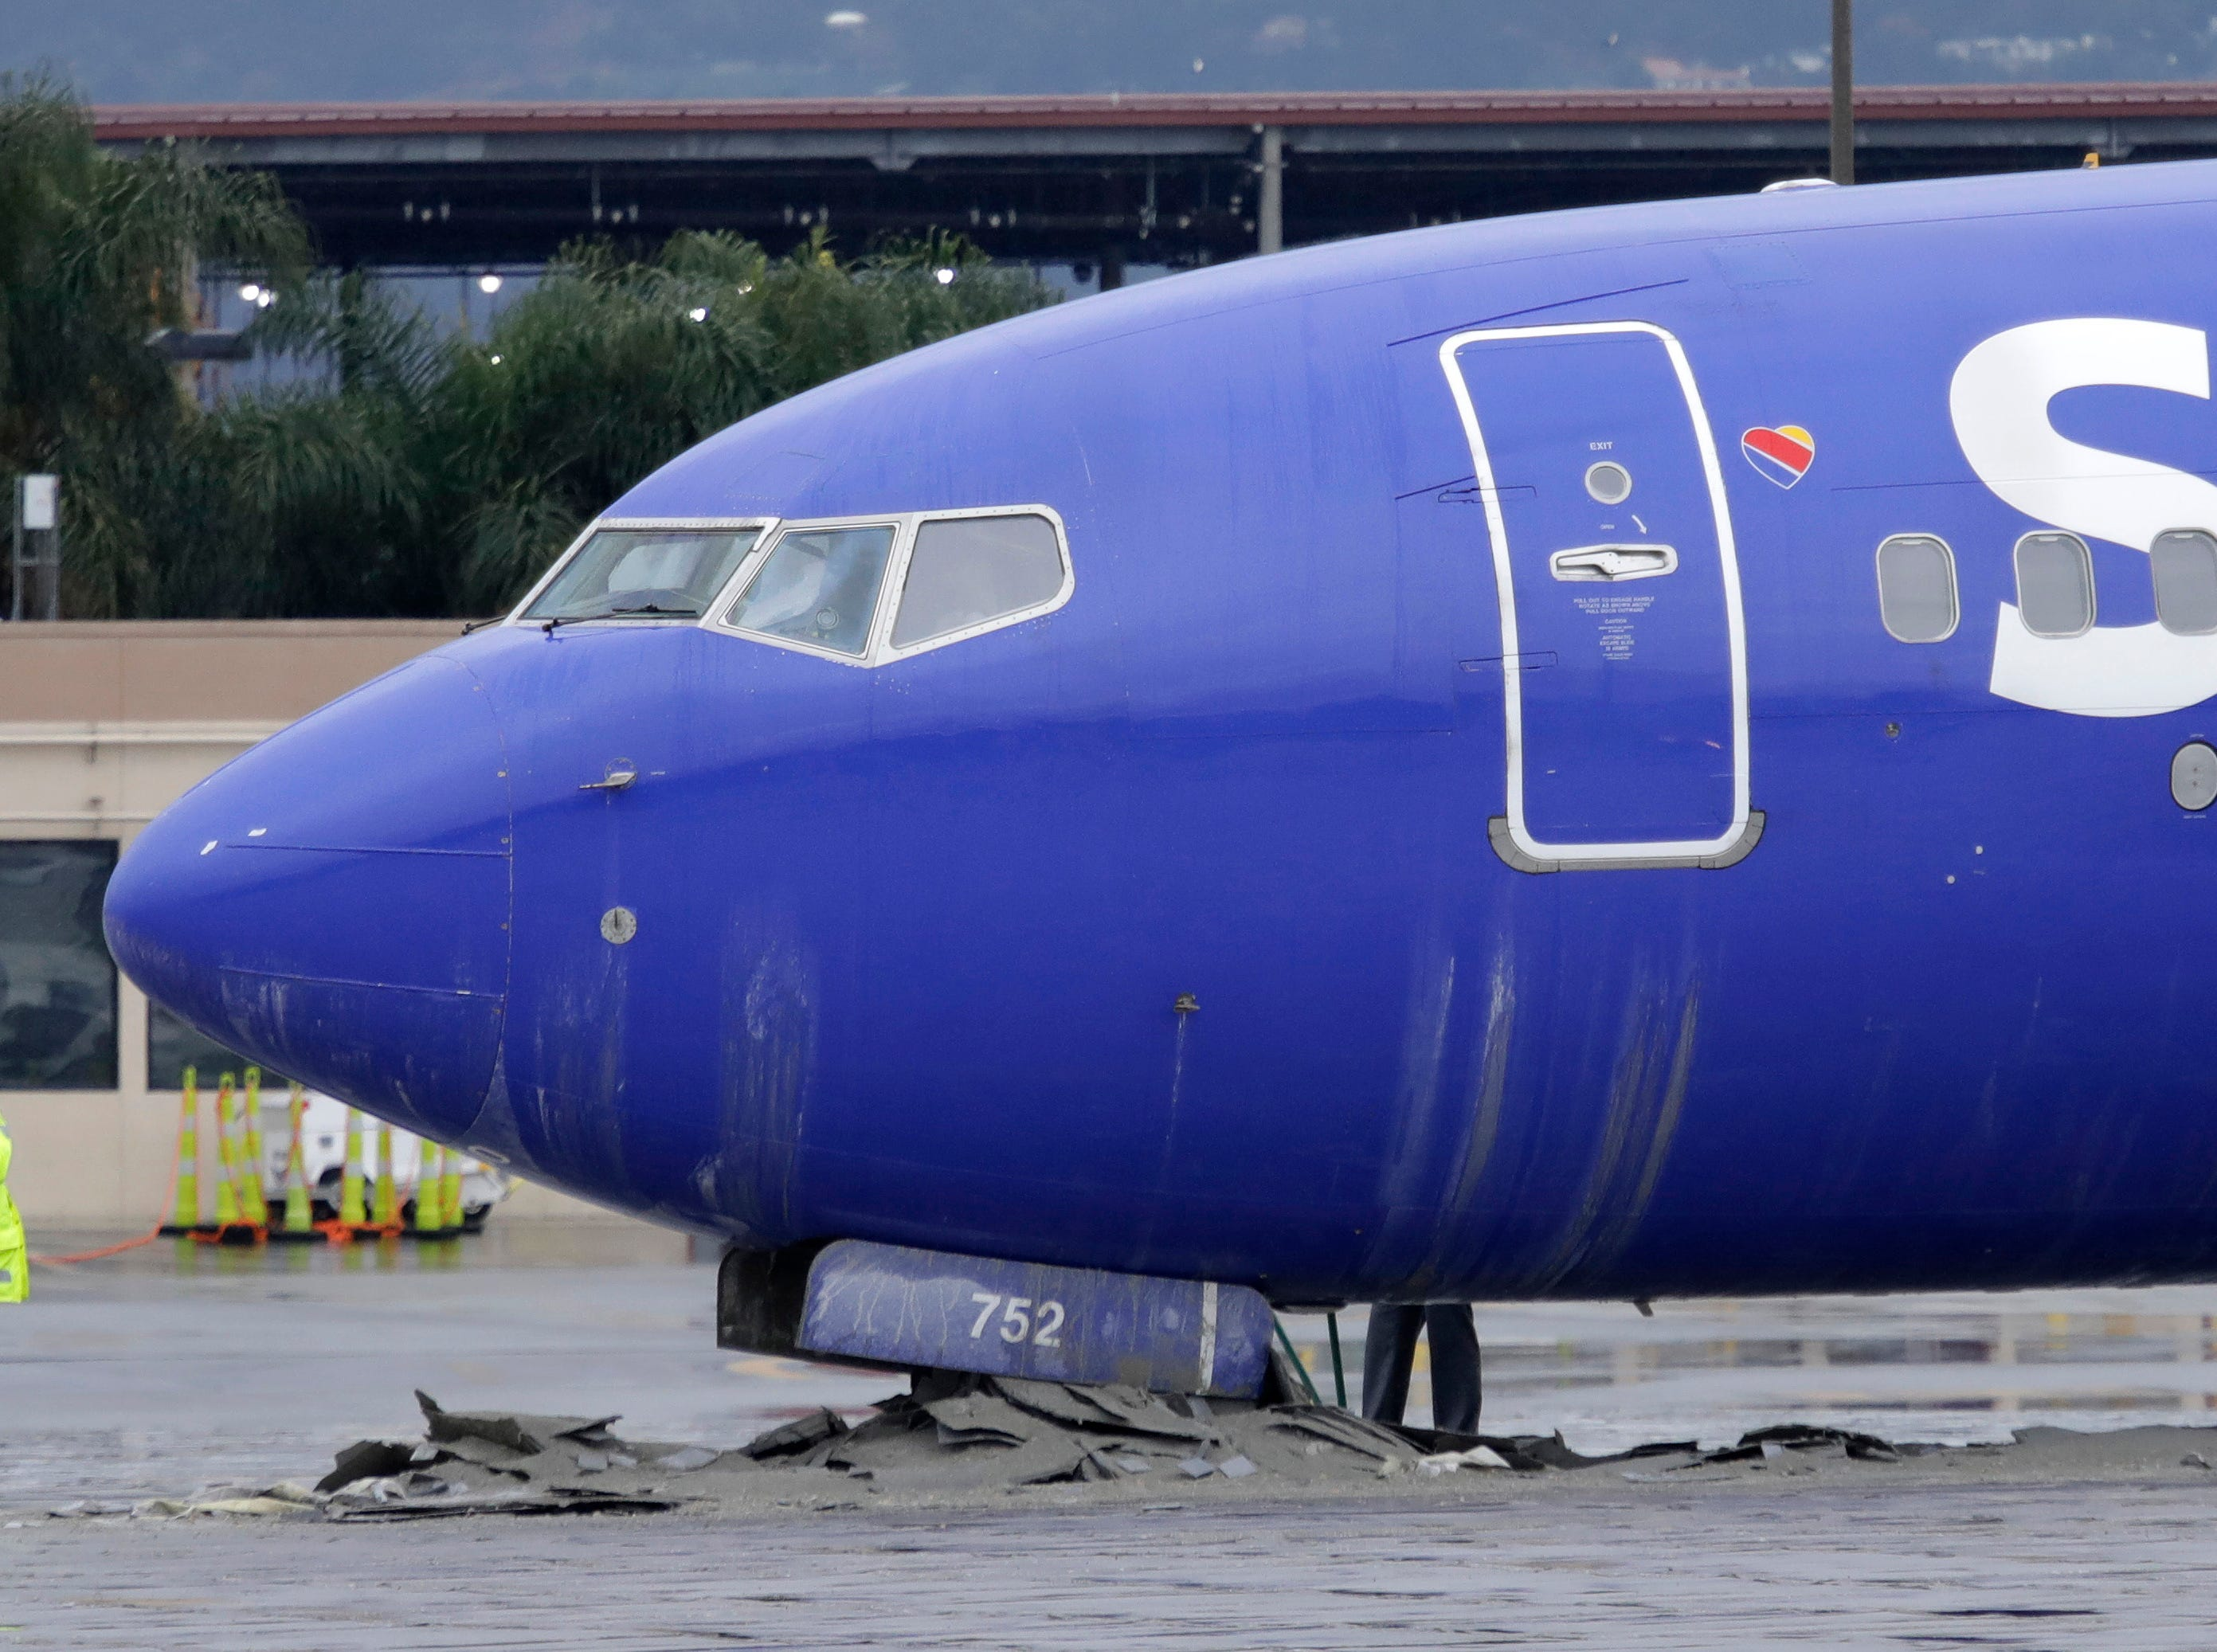 A Southwest Airlines plane slid off the runway at Hollywood Burbank Airport, coming to a stop after its landing gears plowed into a barrier designed to stop the airplane from leaving the runway Thursday, Dec. 6, 2018, in Burbank, Calif. Nobody was hurt when the plane from Oakland skidded off the wet runway as it landed during downpours at the airport north of Los Angeles.